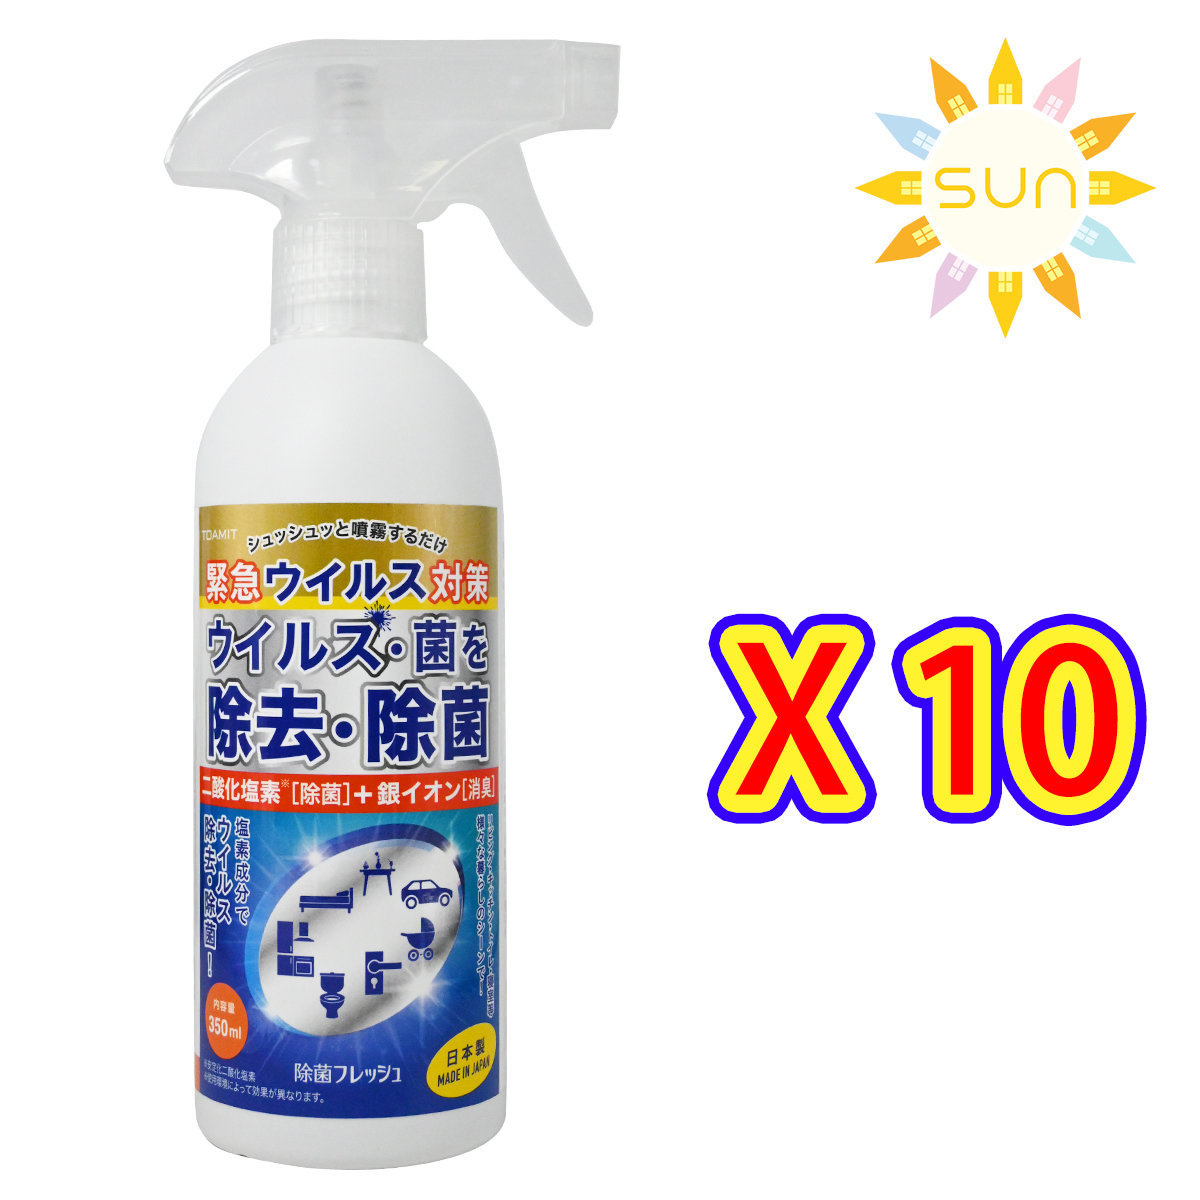 [X10]JAPAN Sanitizing fresh Ag chlorine dioxide aqueous solution spray 350ml X10